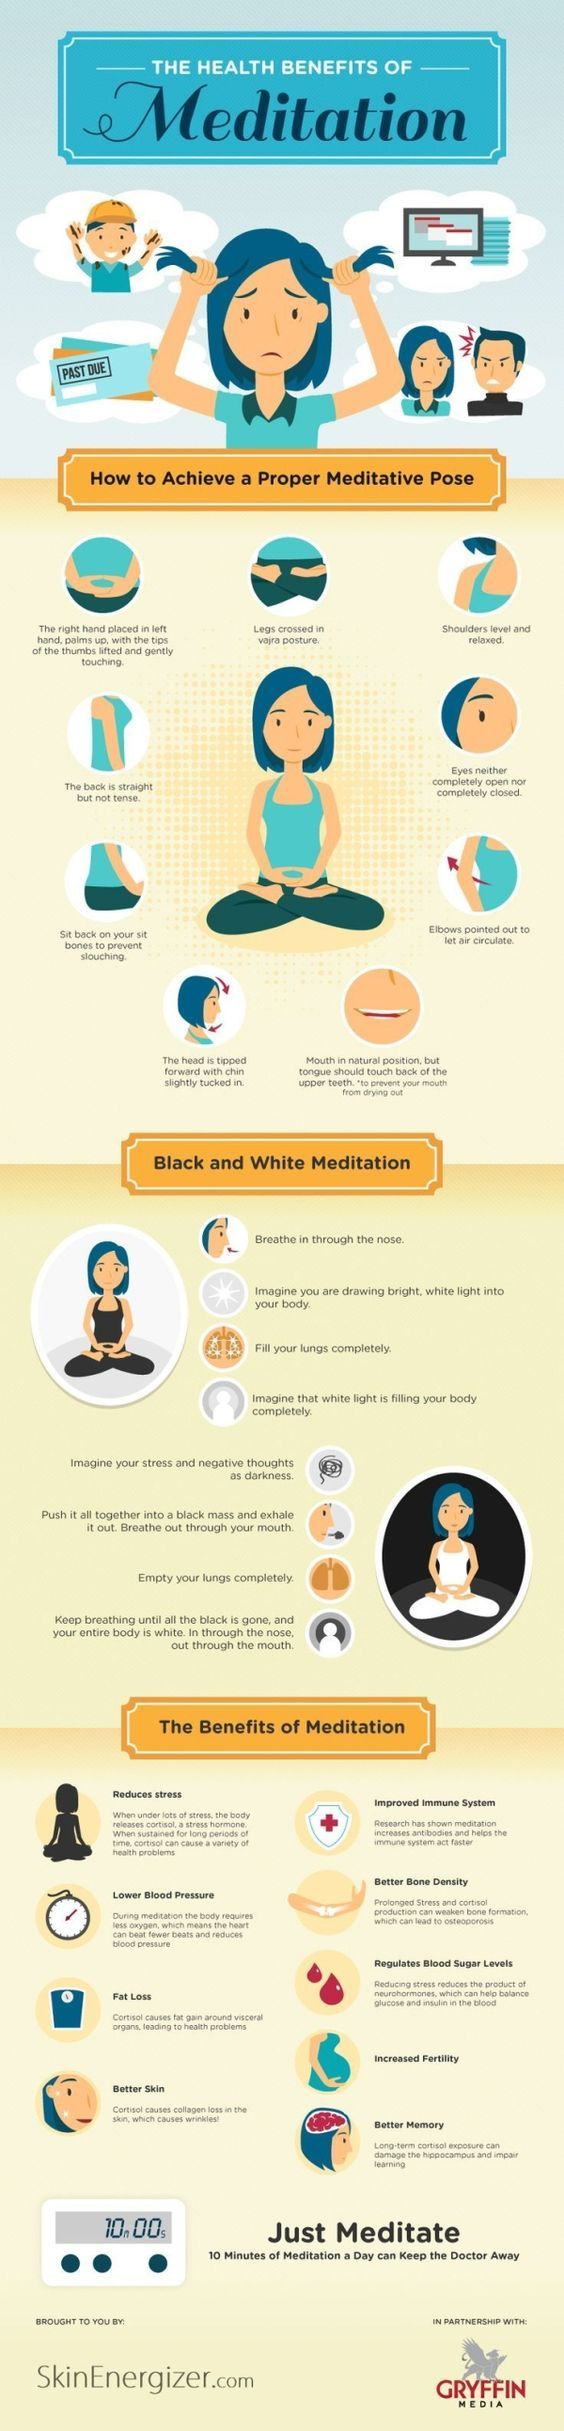 Meditation is gaining popularity for its ability to improve overall well being of the mind, body and soul.  We know it can make us feel happier but did you know it can actually make us healthier?  Here are the most common health benefits of meditation // skinnymetea.com.au